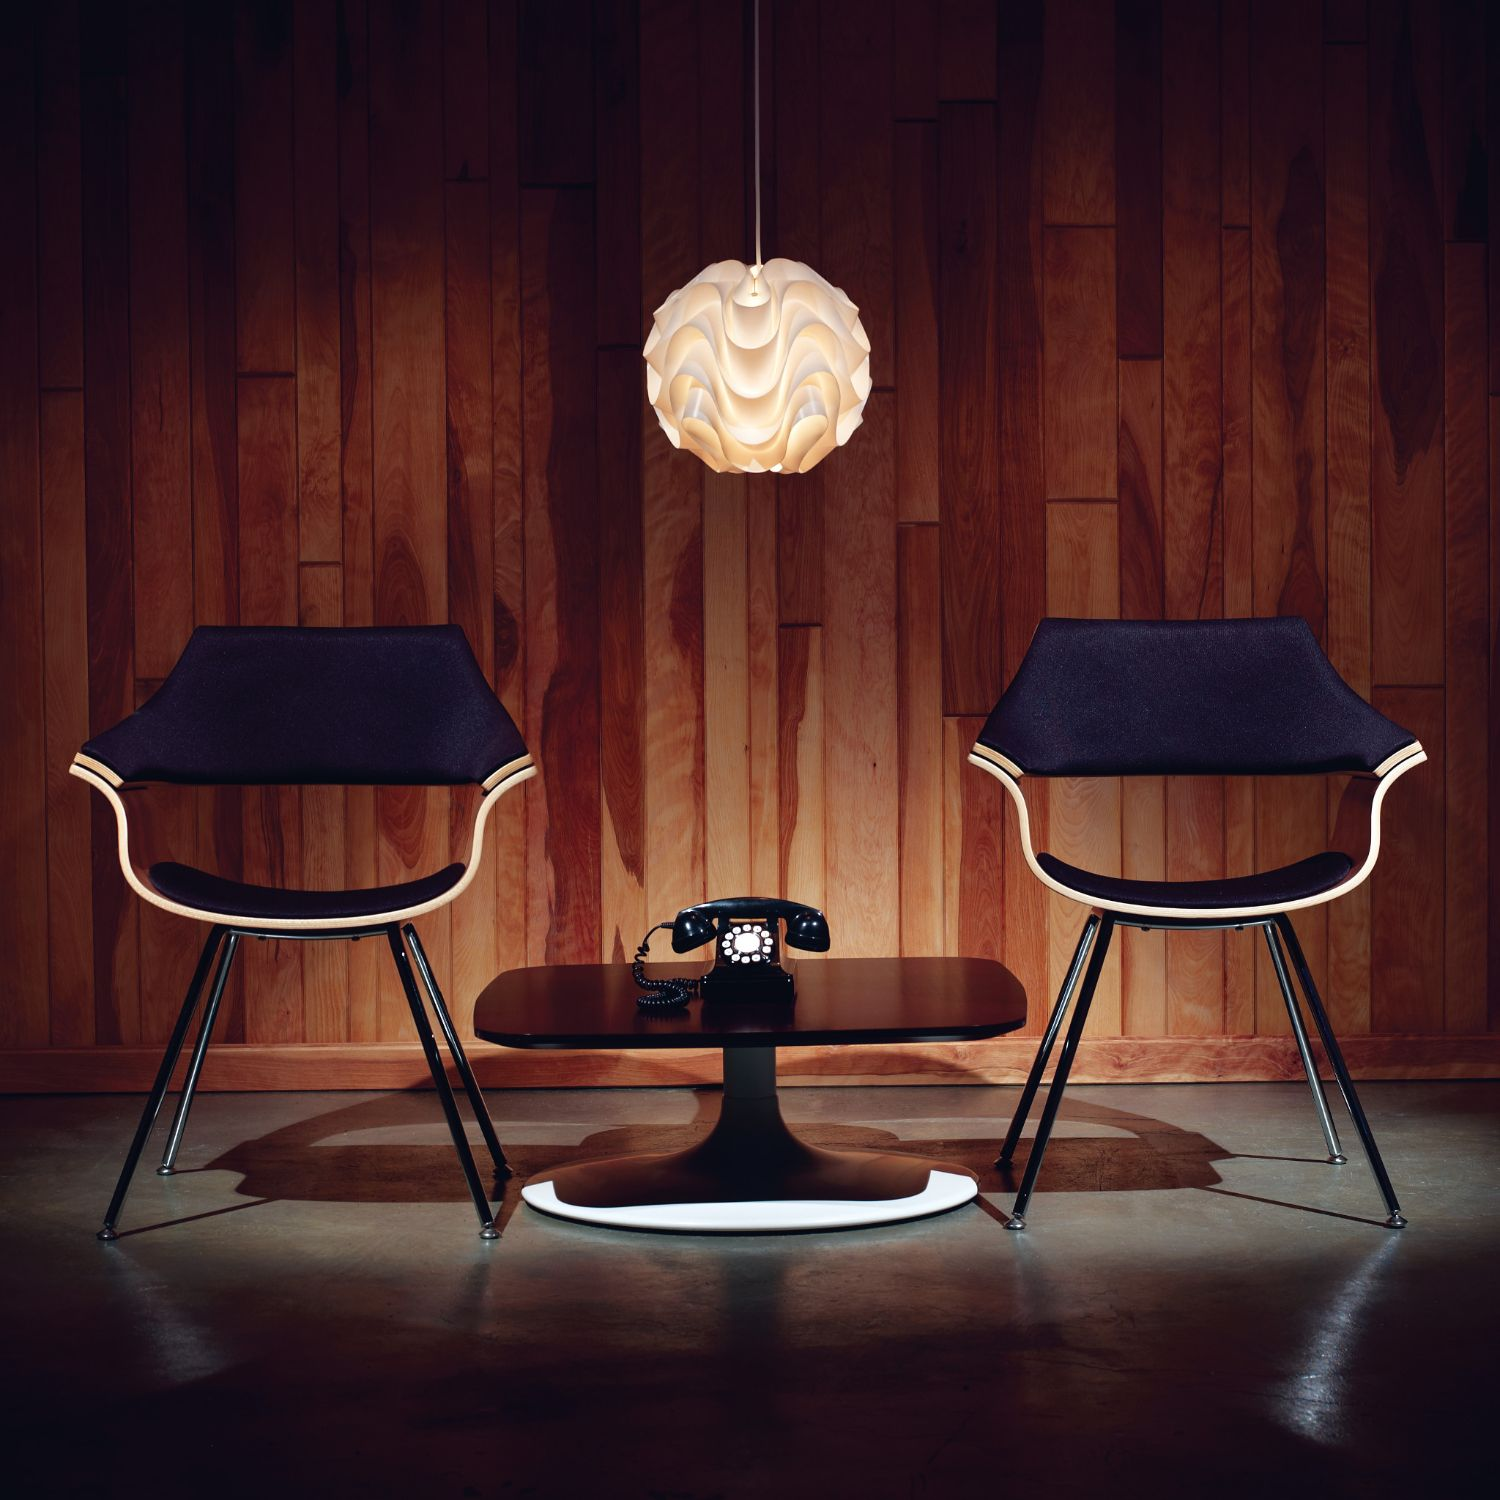 ki itoki chairs